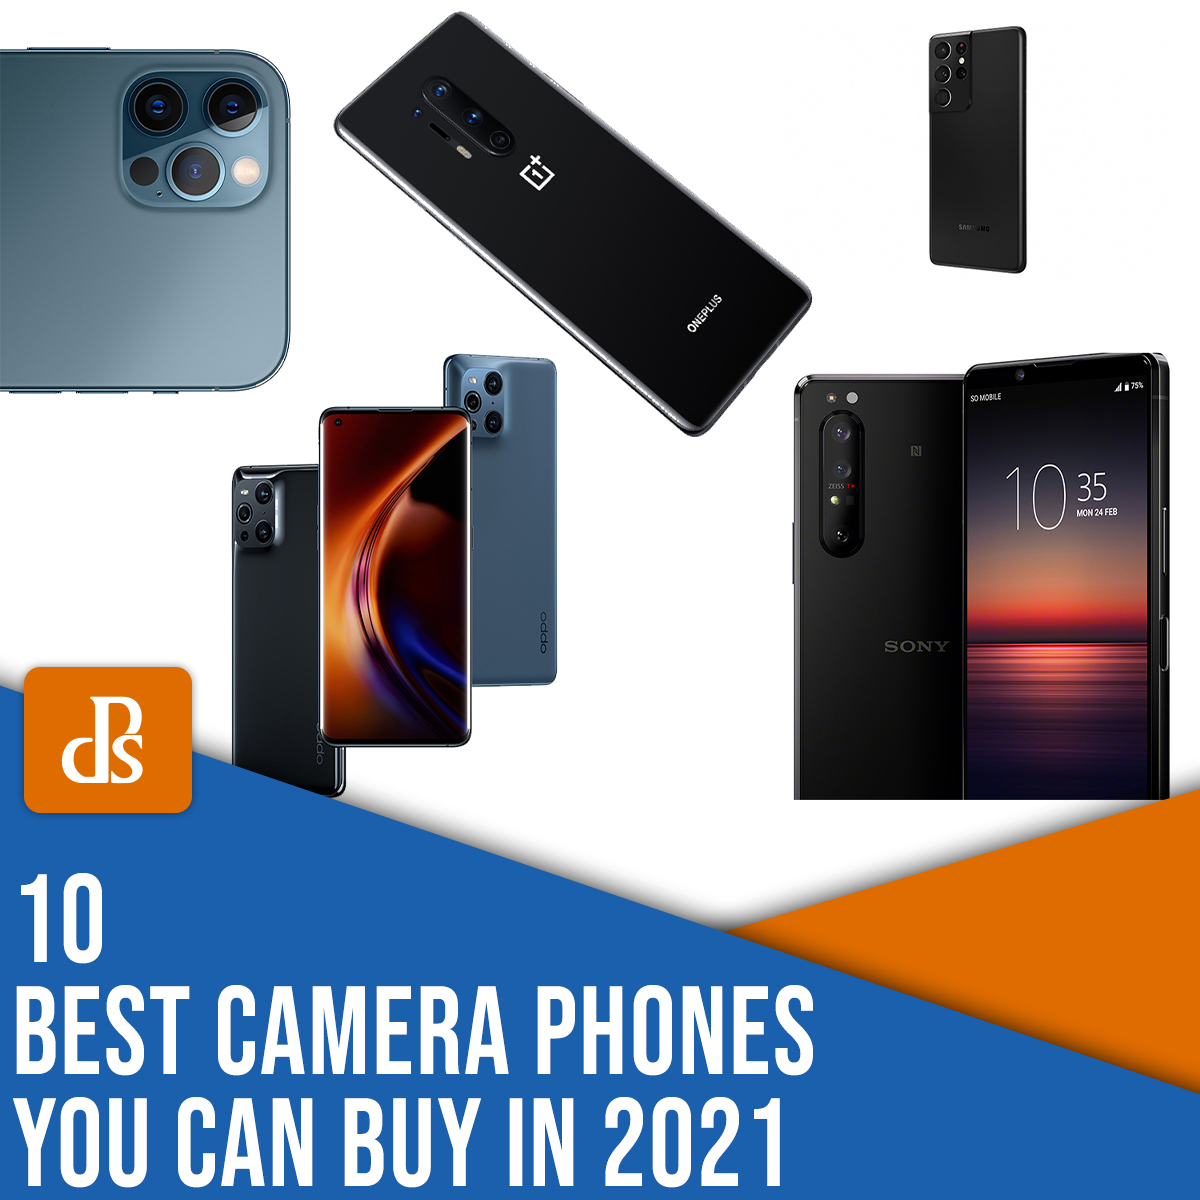 the best camera phones you can buy in 2021